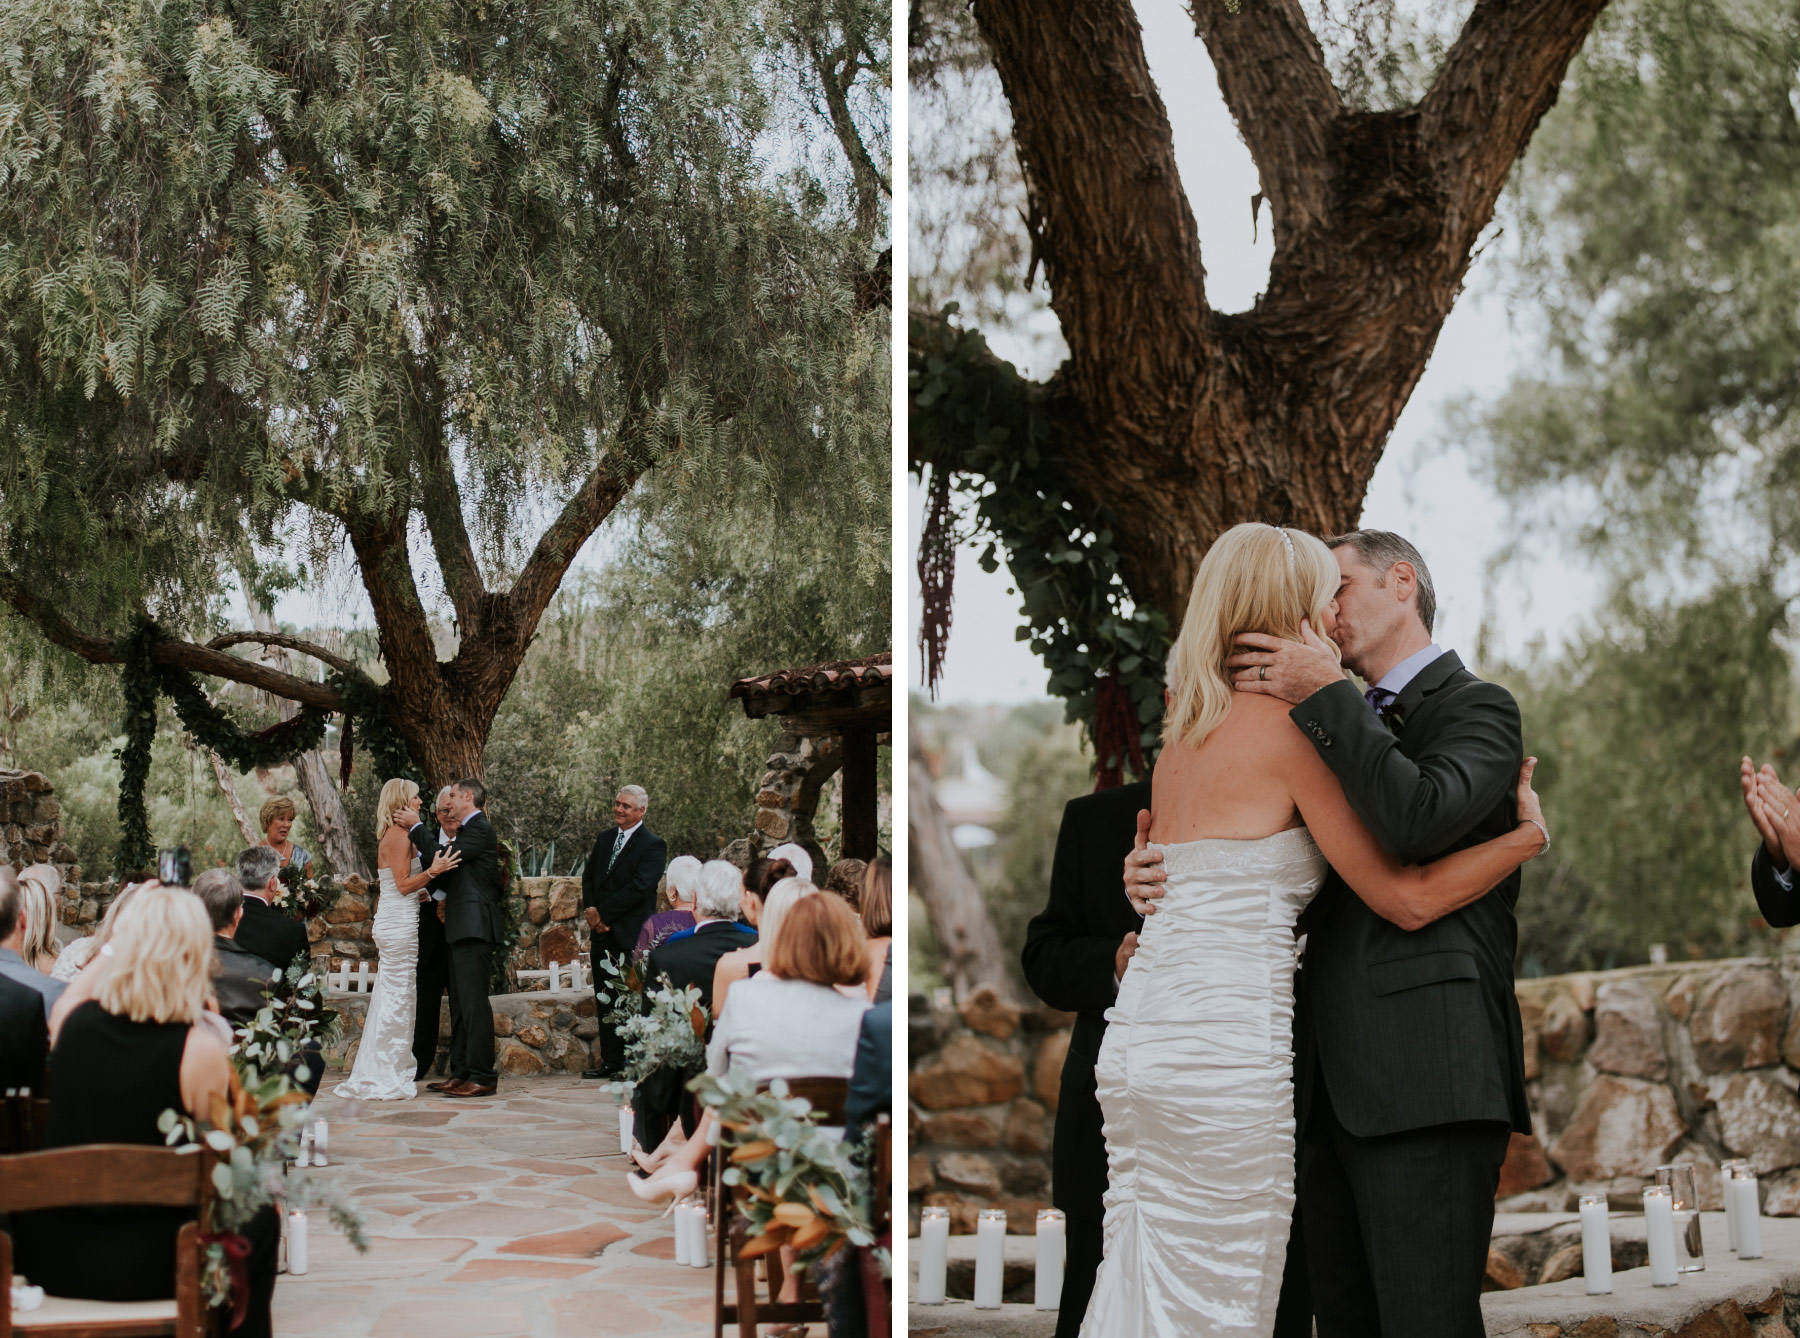 Bride and groom first kiss at Leo Carrillo Ranch wedding